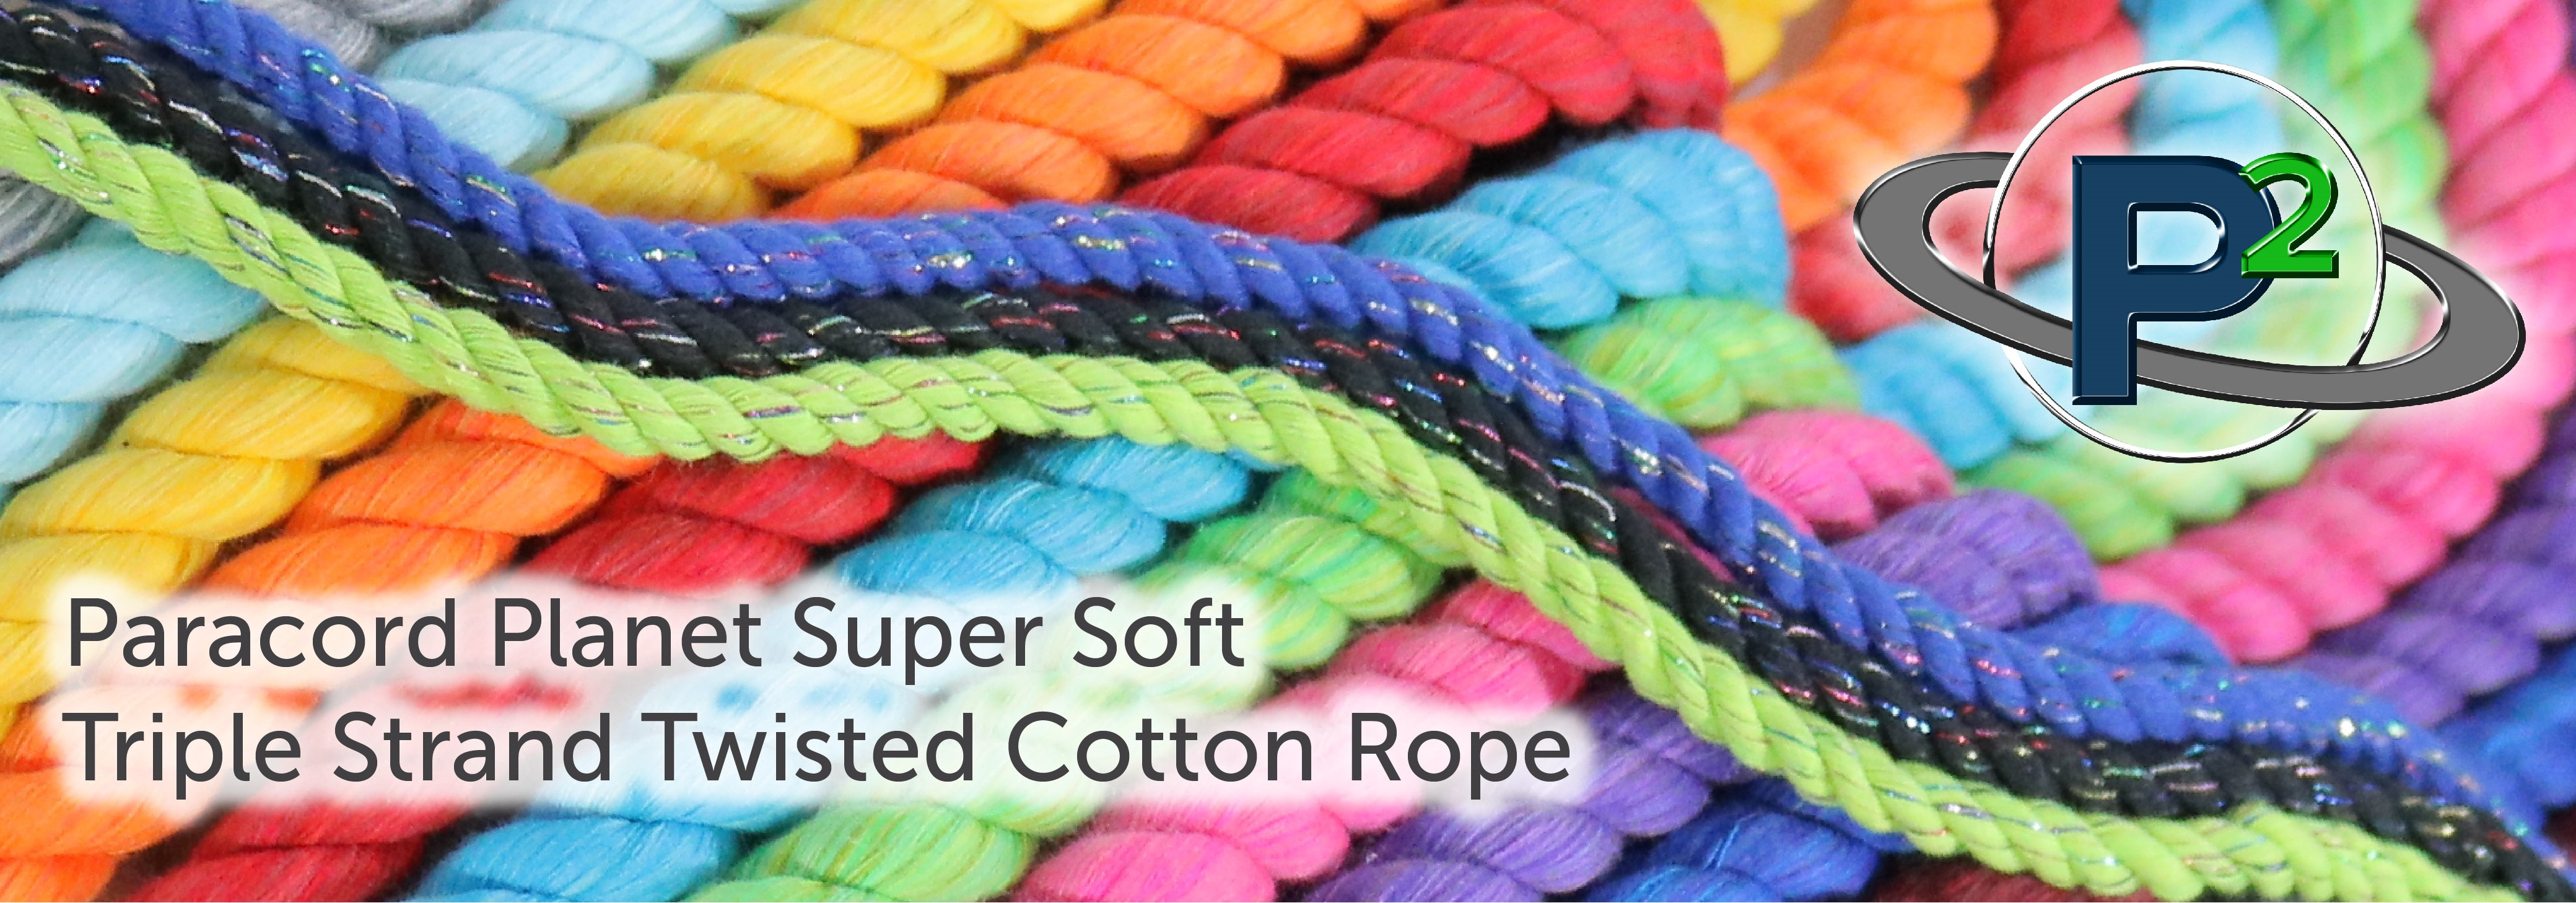 Paracord Planet Triple Strand Twisted Cotton Rope